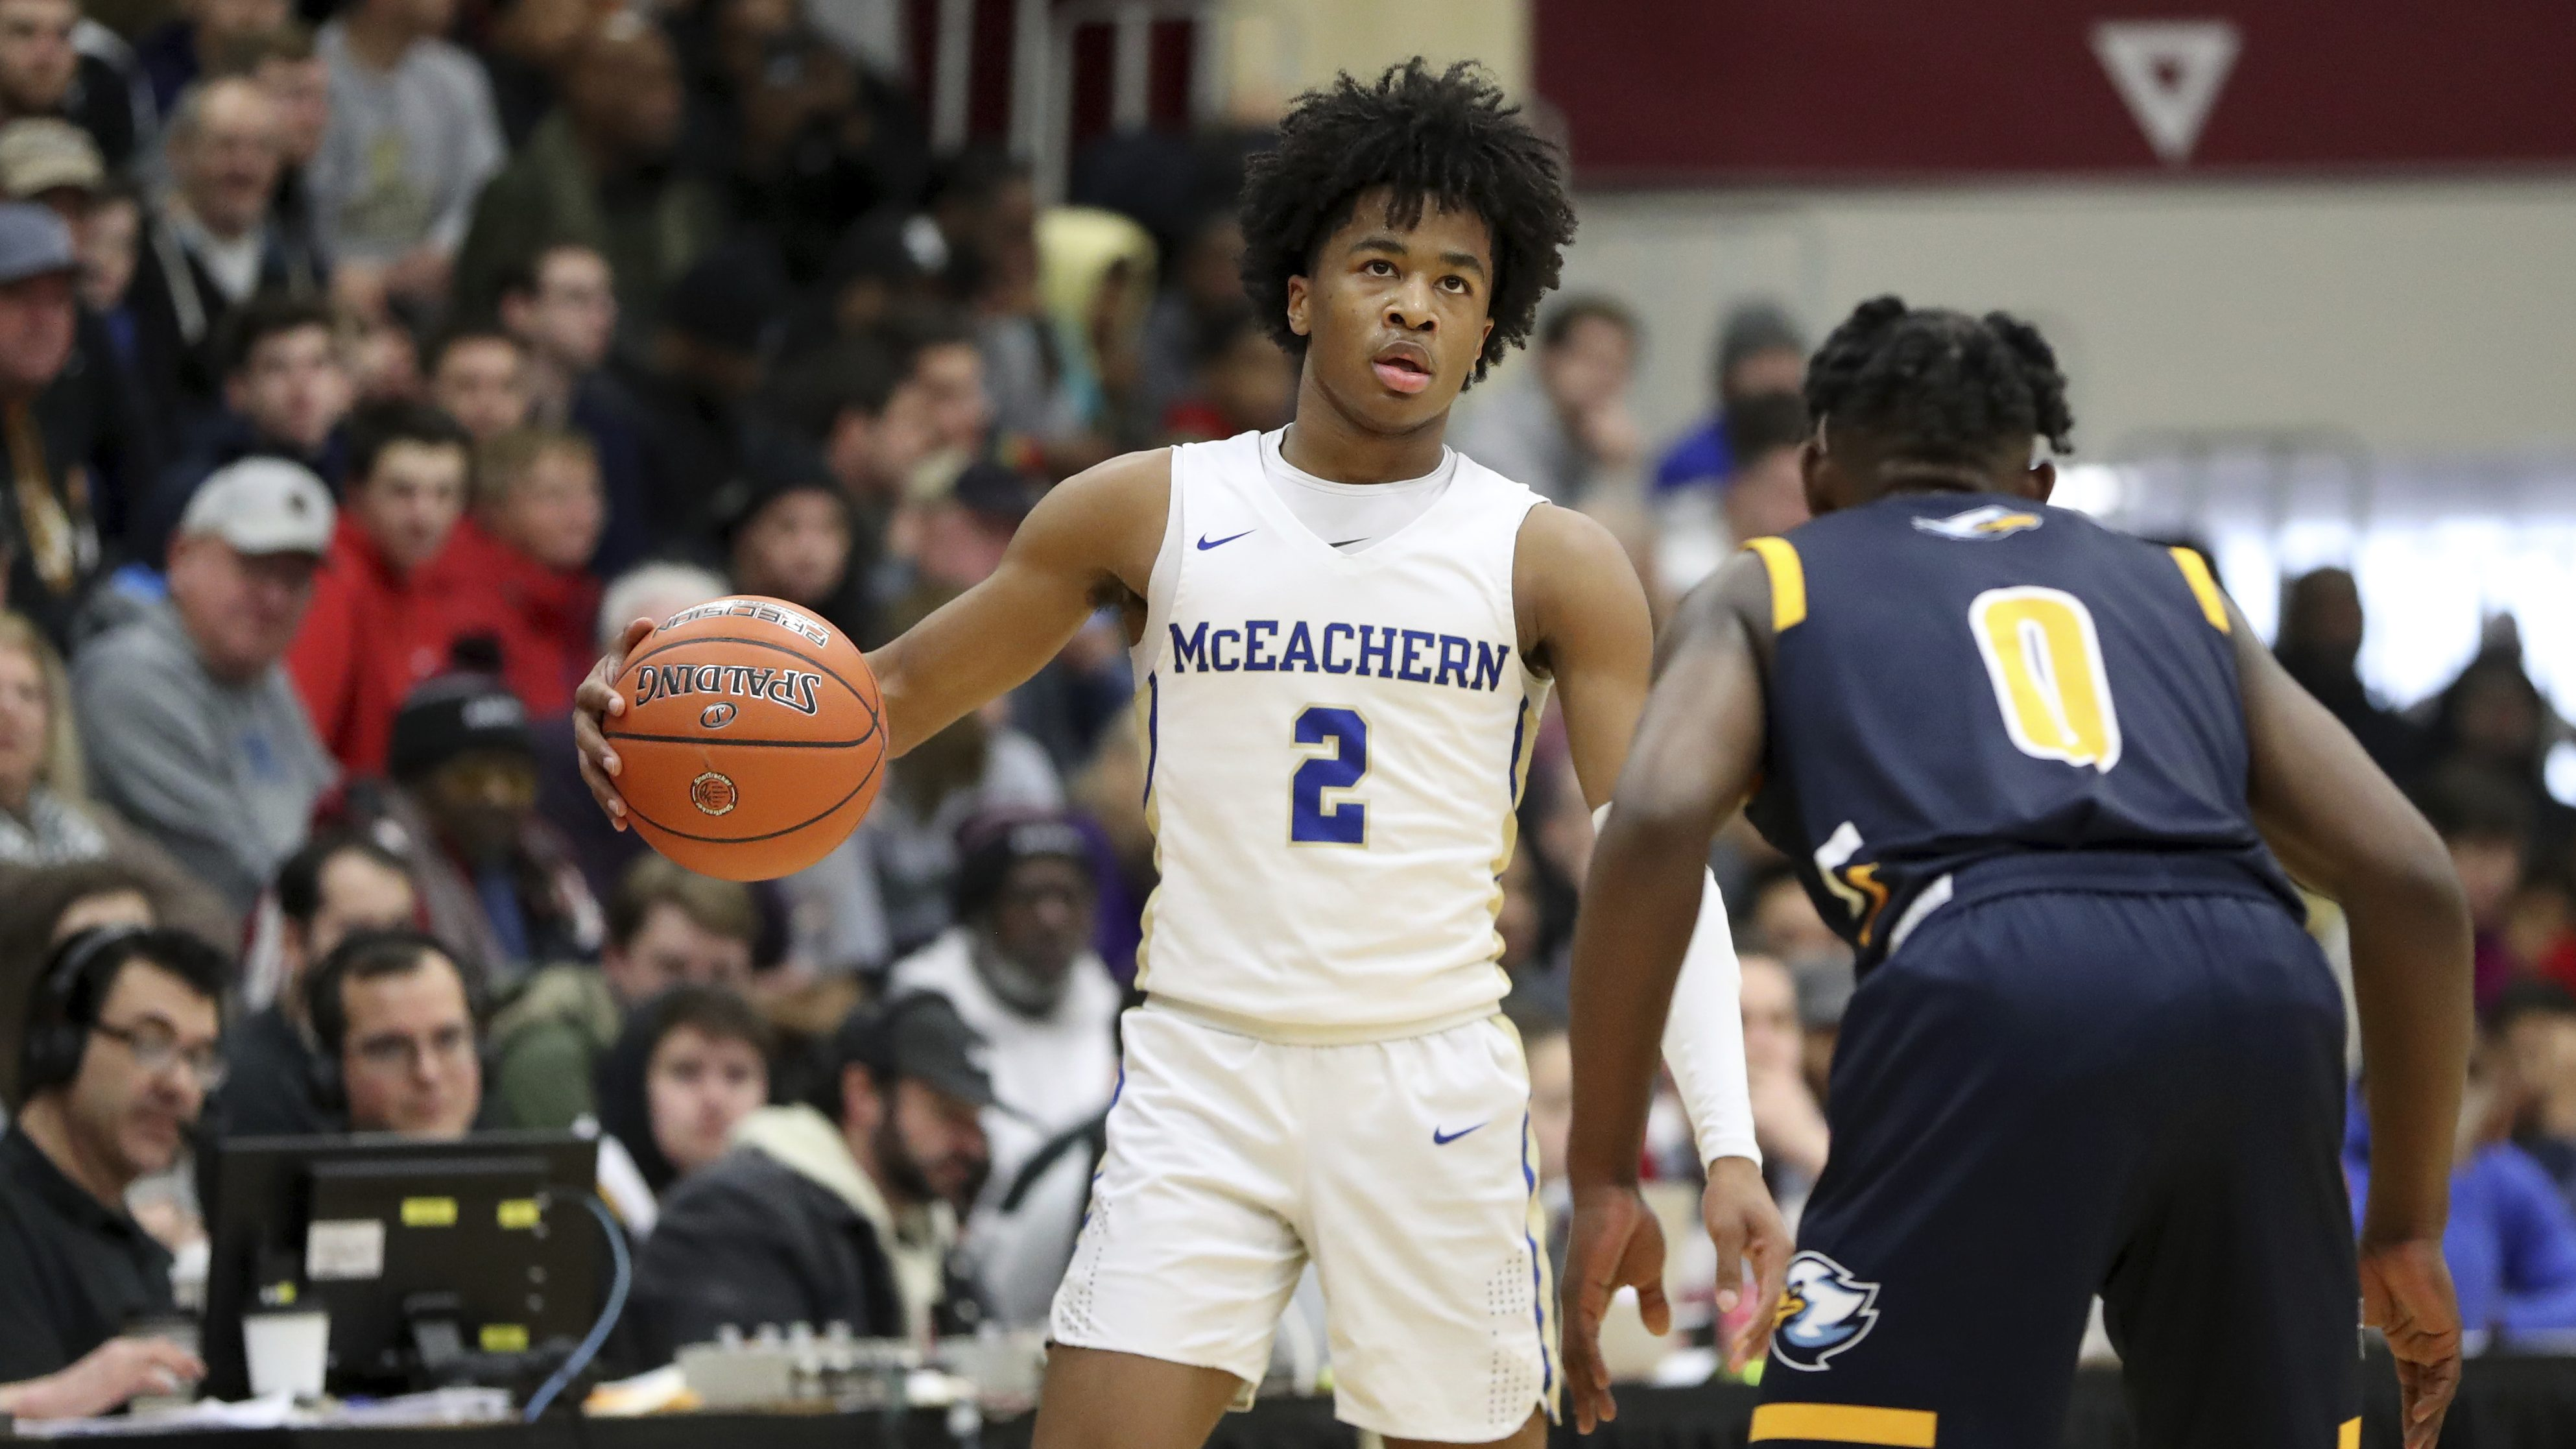 Reigning ALL-USA POY Sharife Cooper finding new motivation in final season